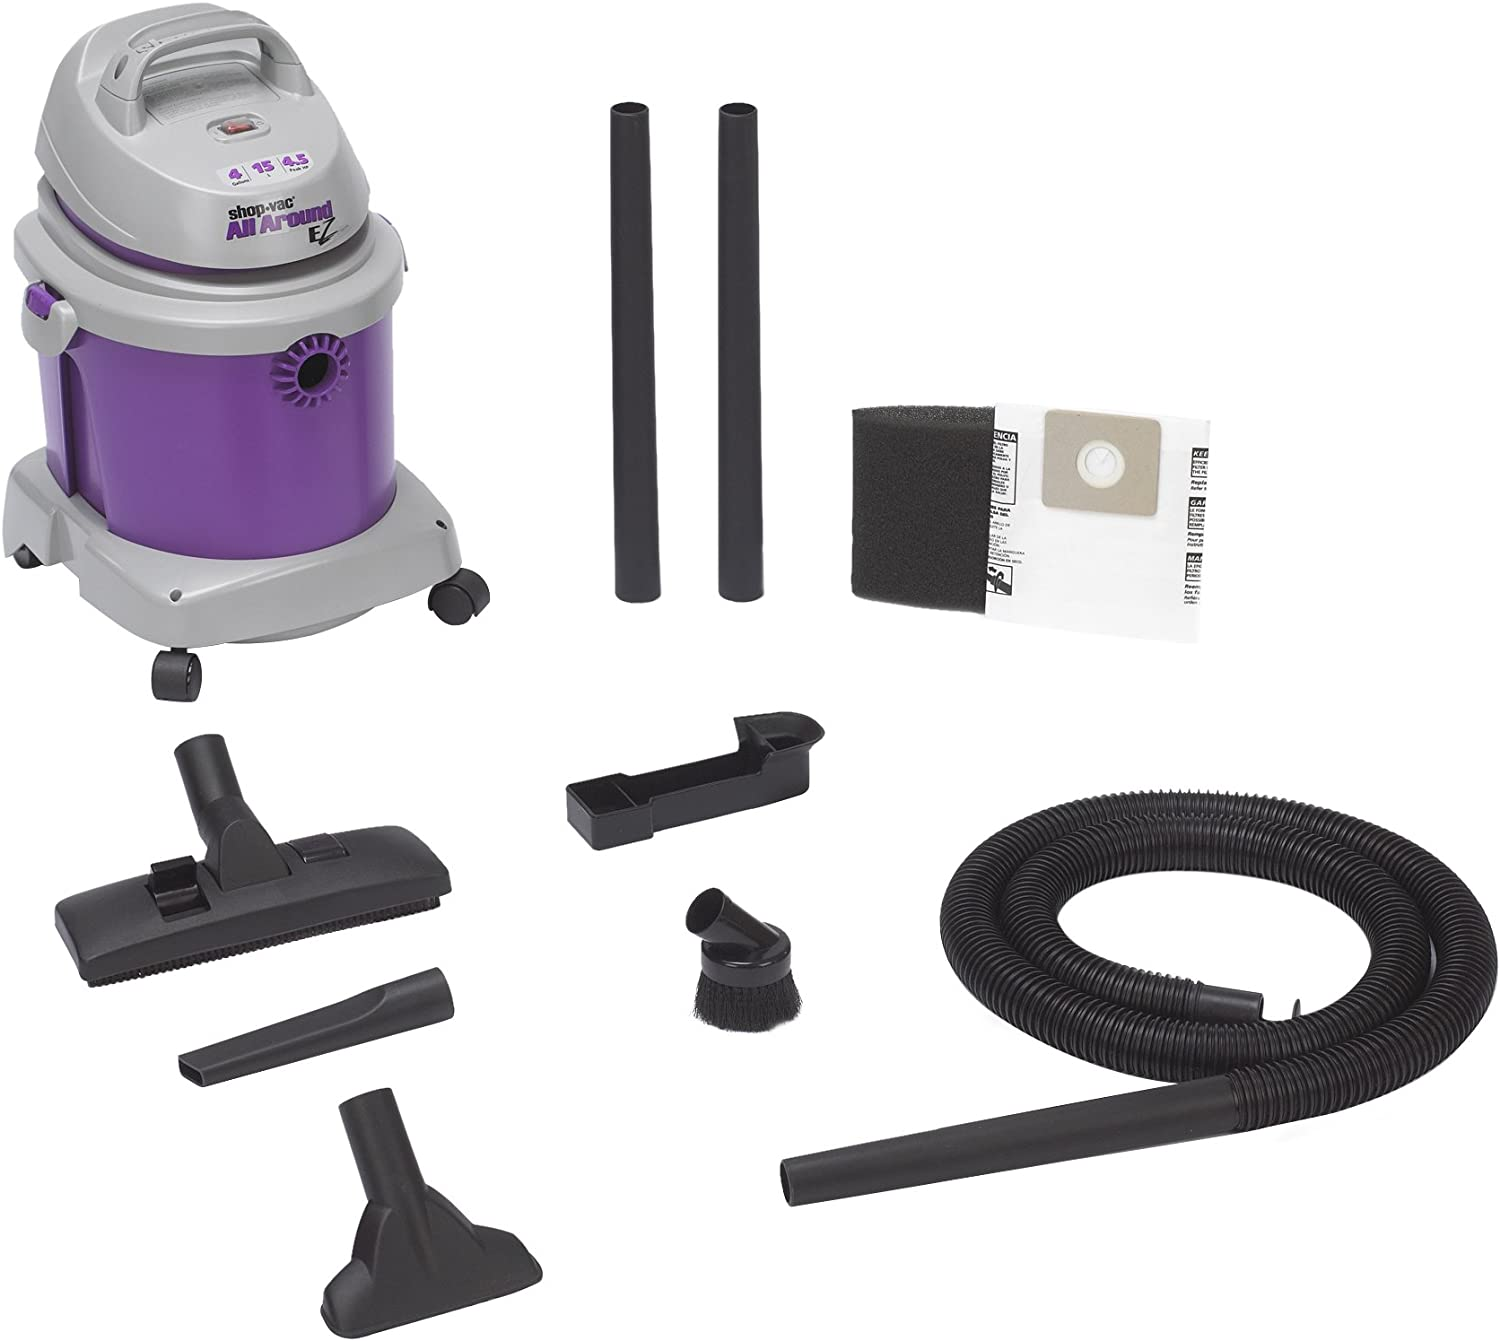 Shop-Vac 5895400 4.5-Peak Horsepower AllAround EZ Series Wet Dry Vacuum 4-Gallon With Onboard Tool & Cord Storage & Dual Filtration, Uses Type LL Filter Bag & Type R Foam Sleeve